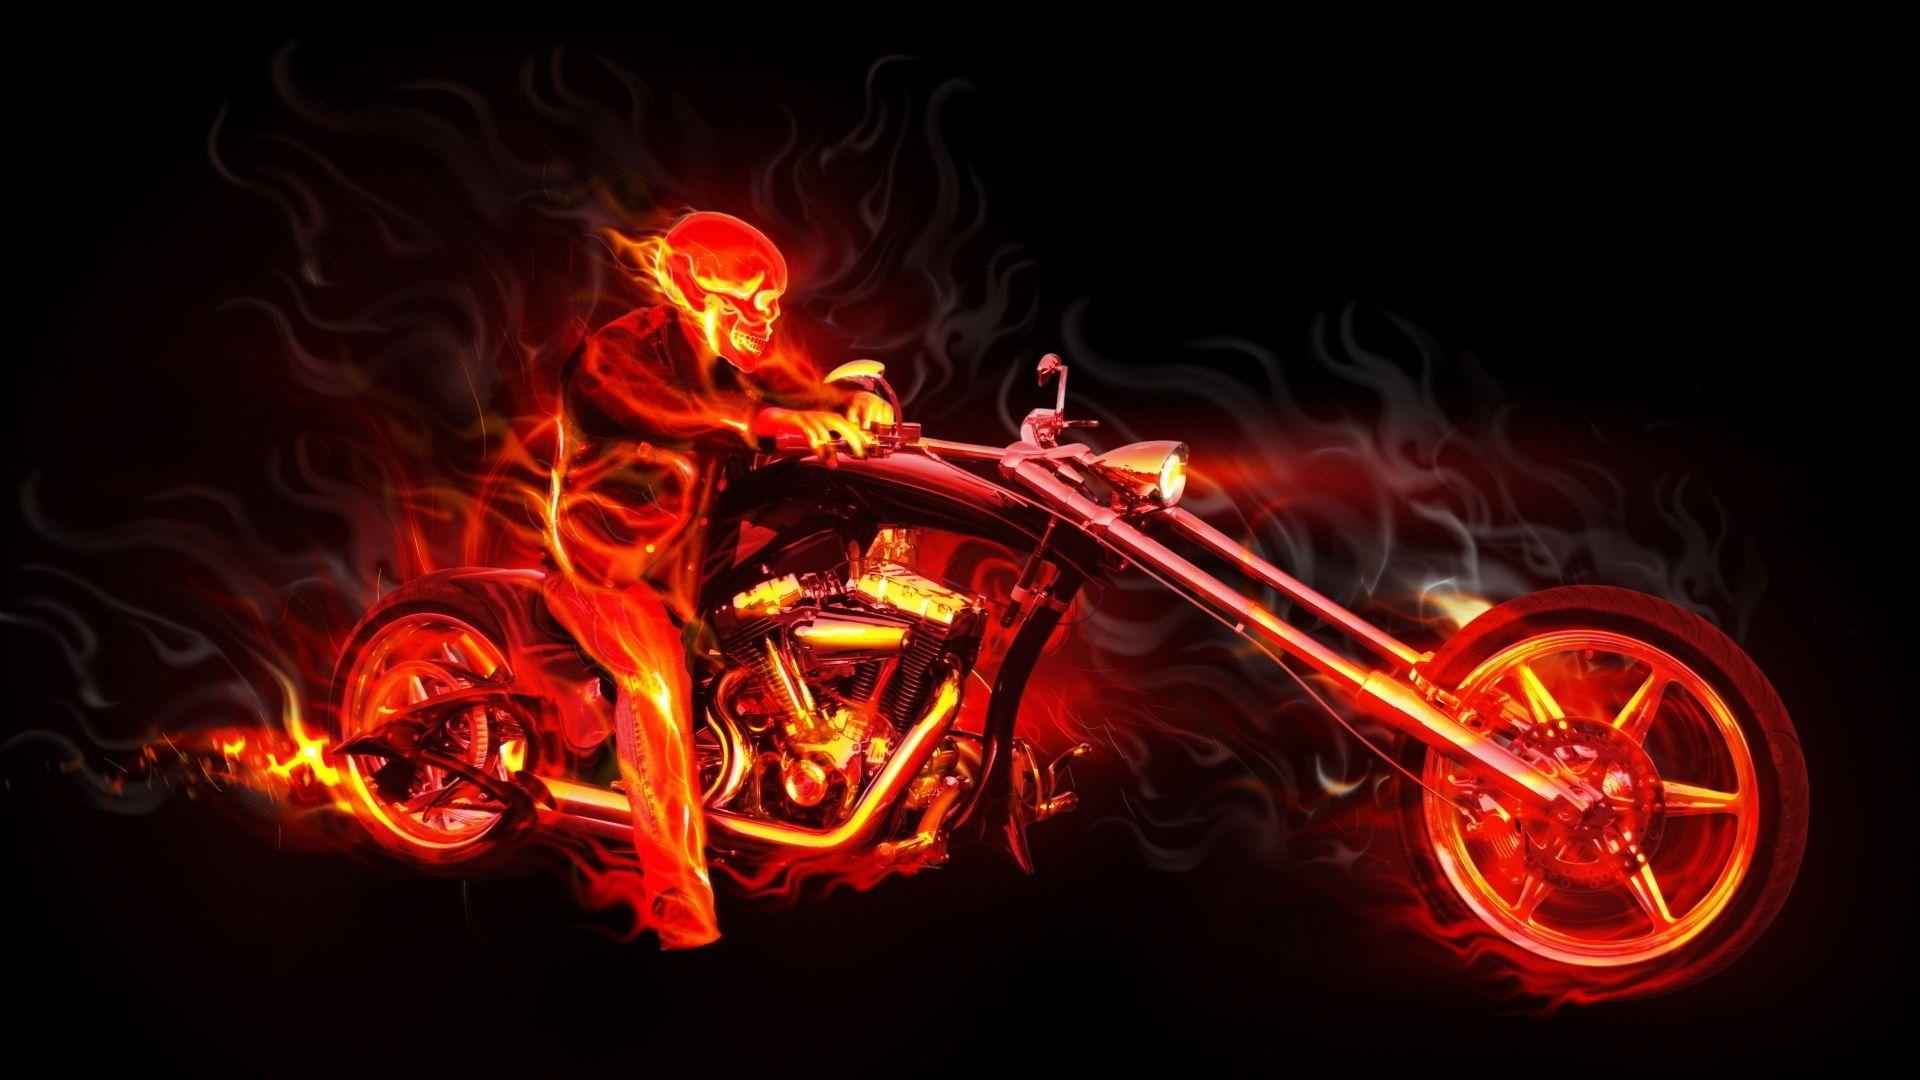 Ultra HD K Ghost rider Wallpapers HD, Desktop Backgrounds 1920x1080